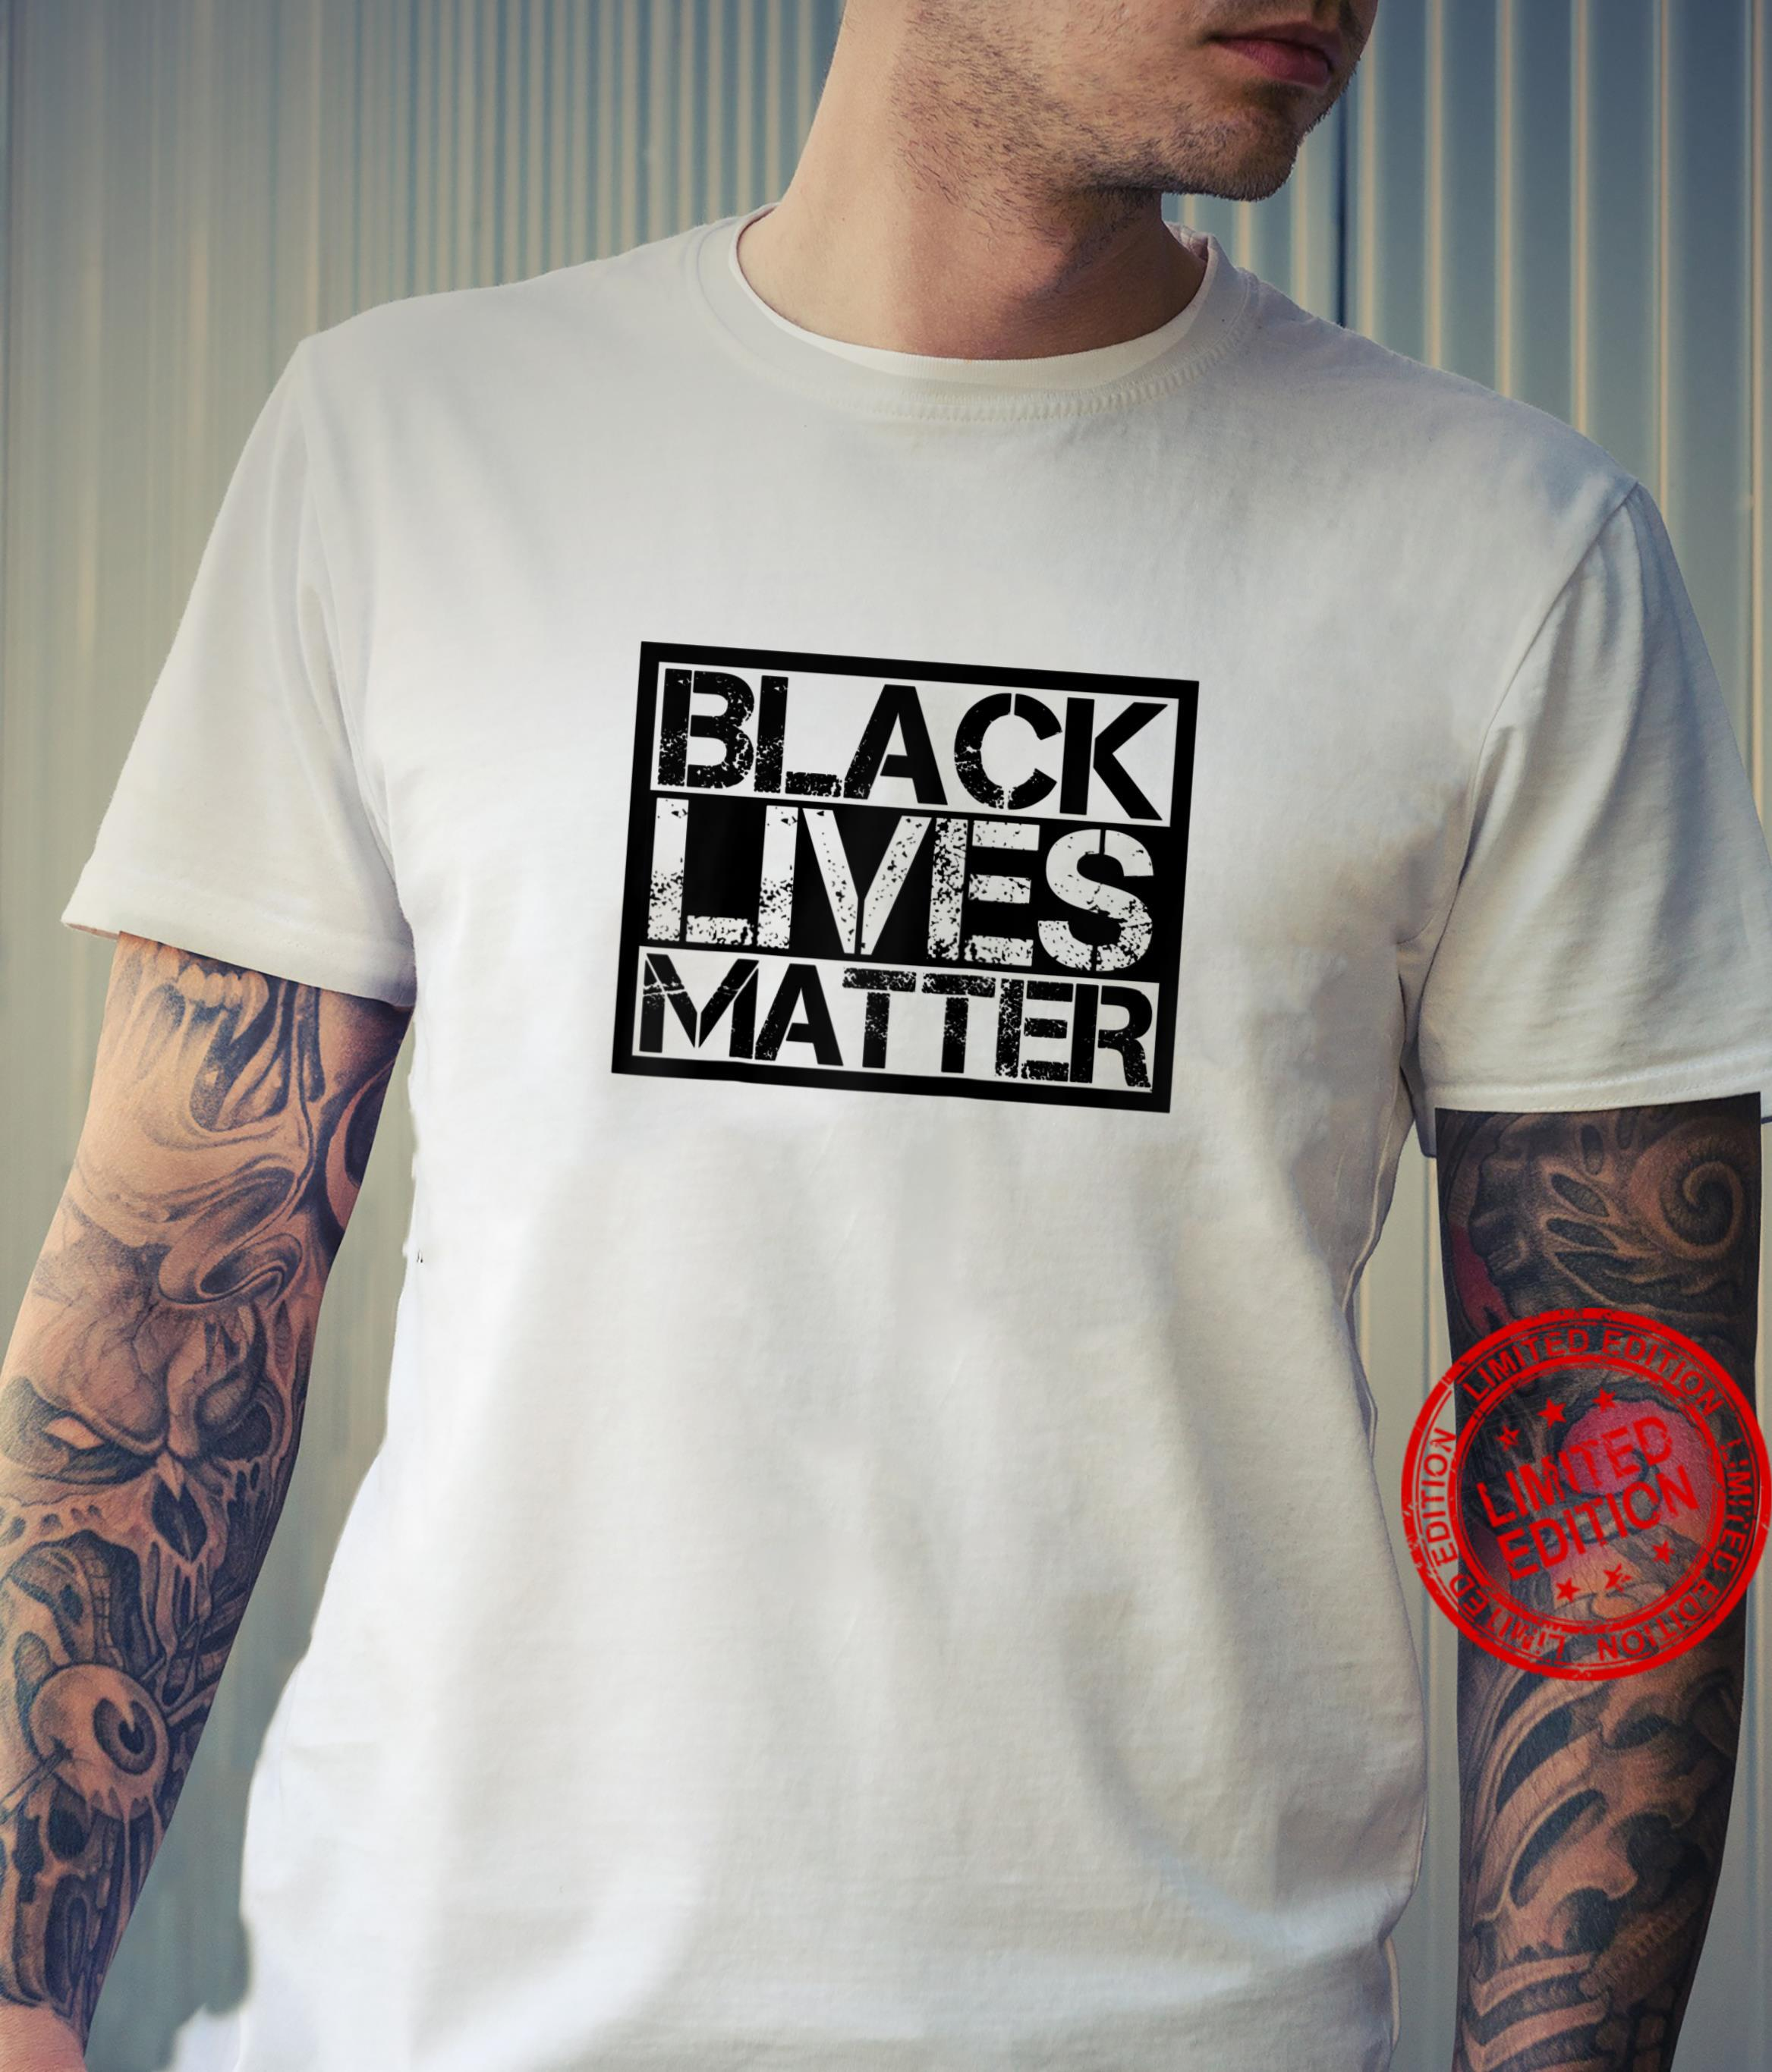 Black Lives Matter Shirt for BLM Protest Awesome Unisex Shirt